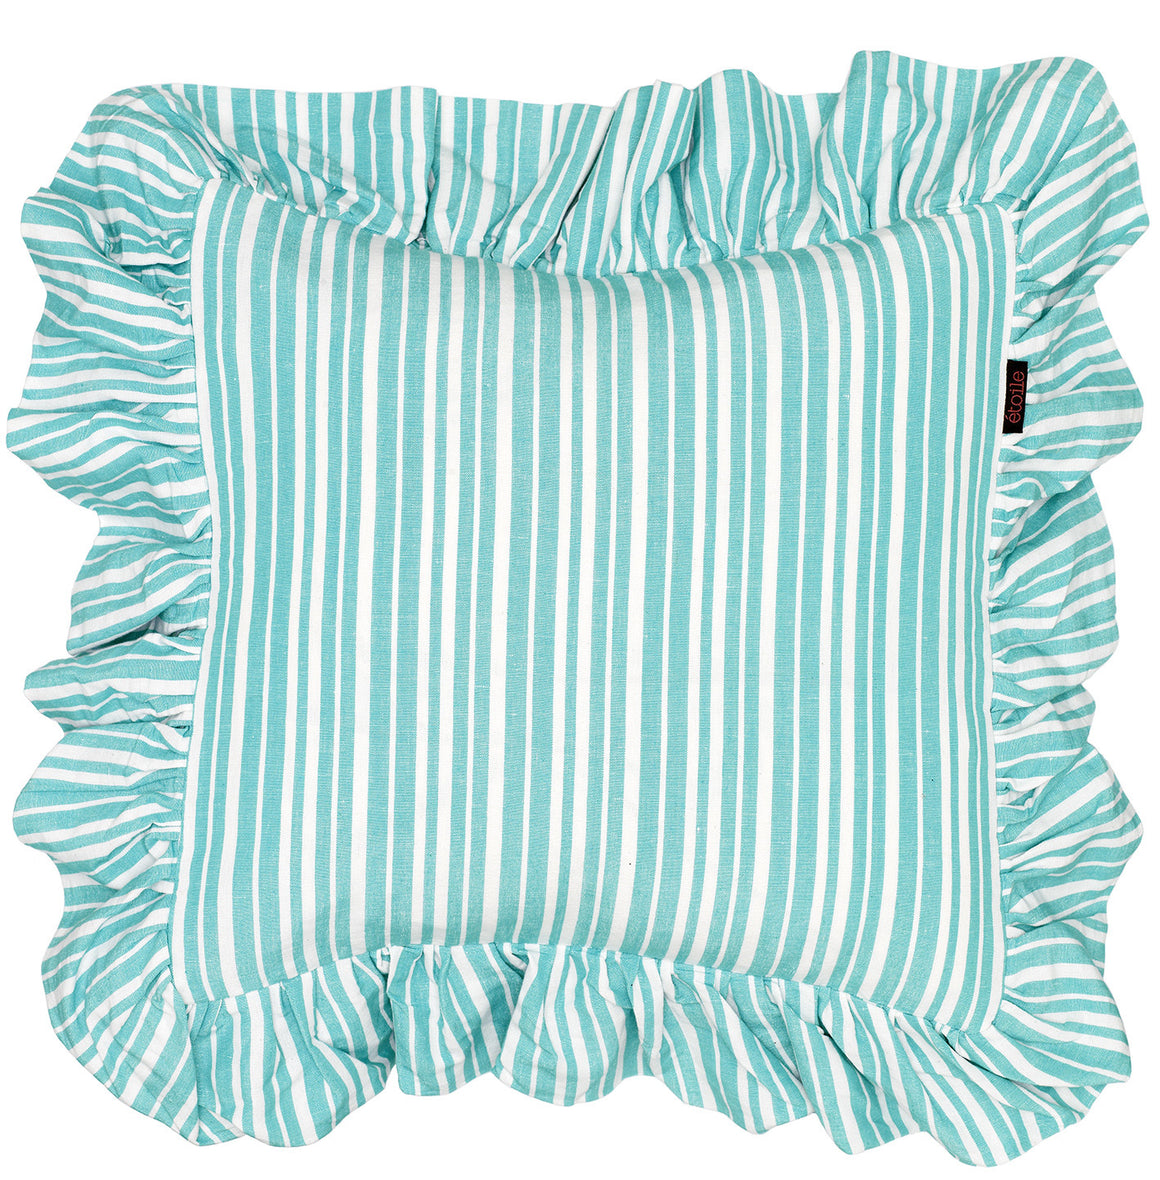 Palermo Ticking Stripe Ruffle Decorative Throw Pillow in Pacific Turquoise Blue 45x45cm 18x18""